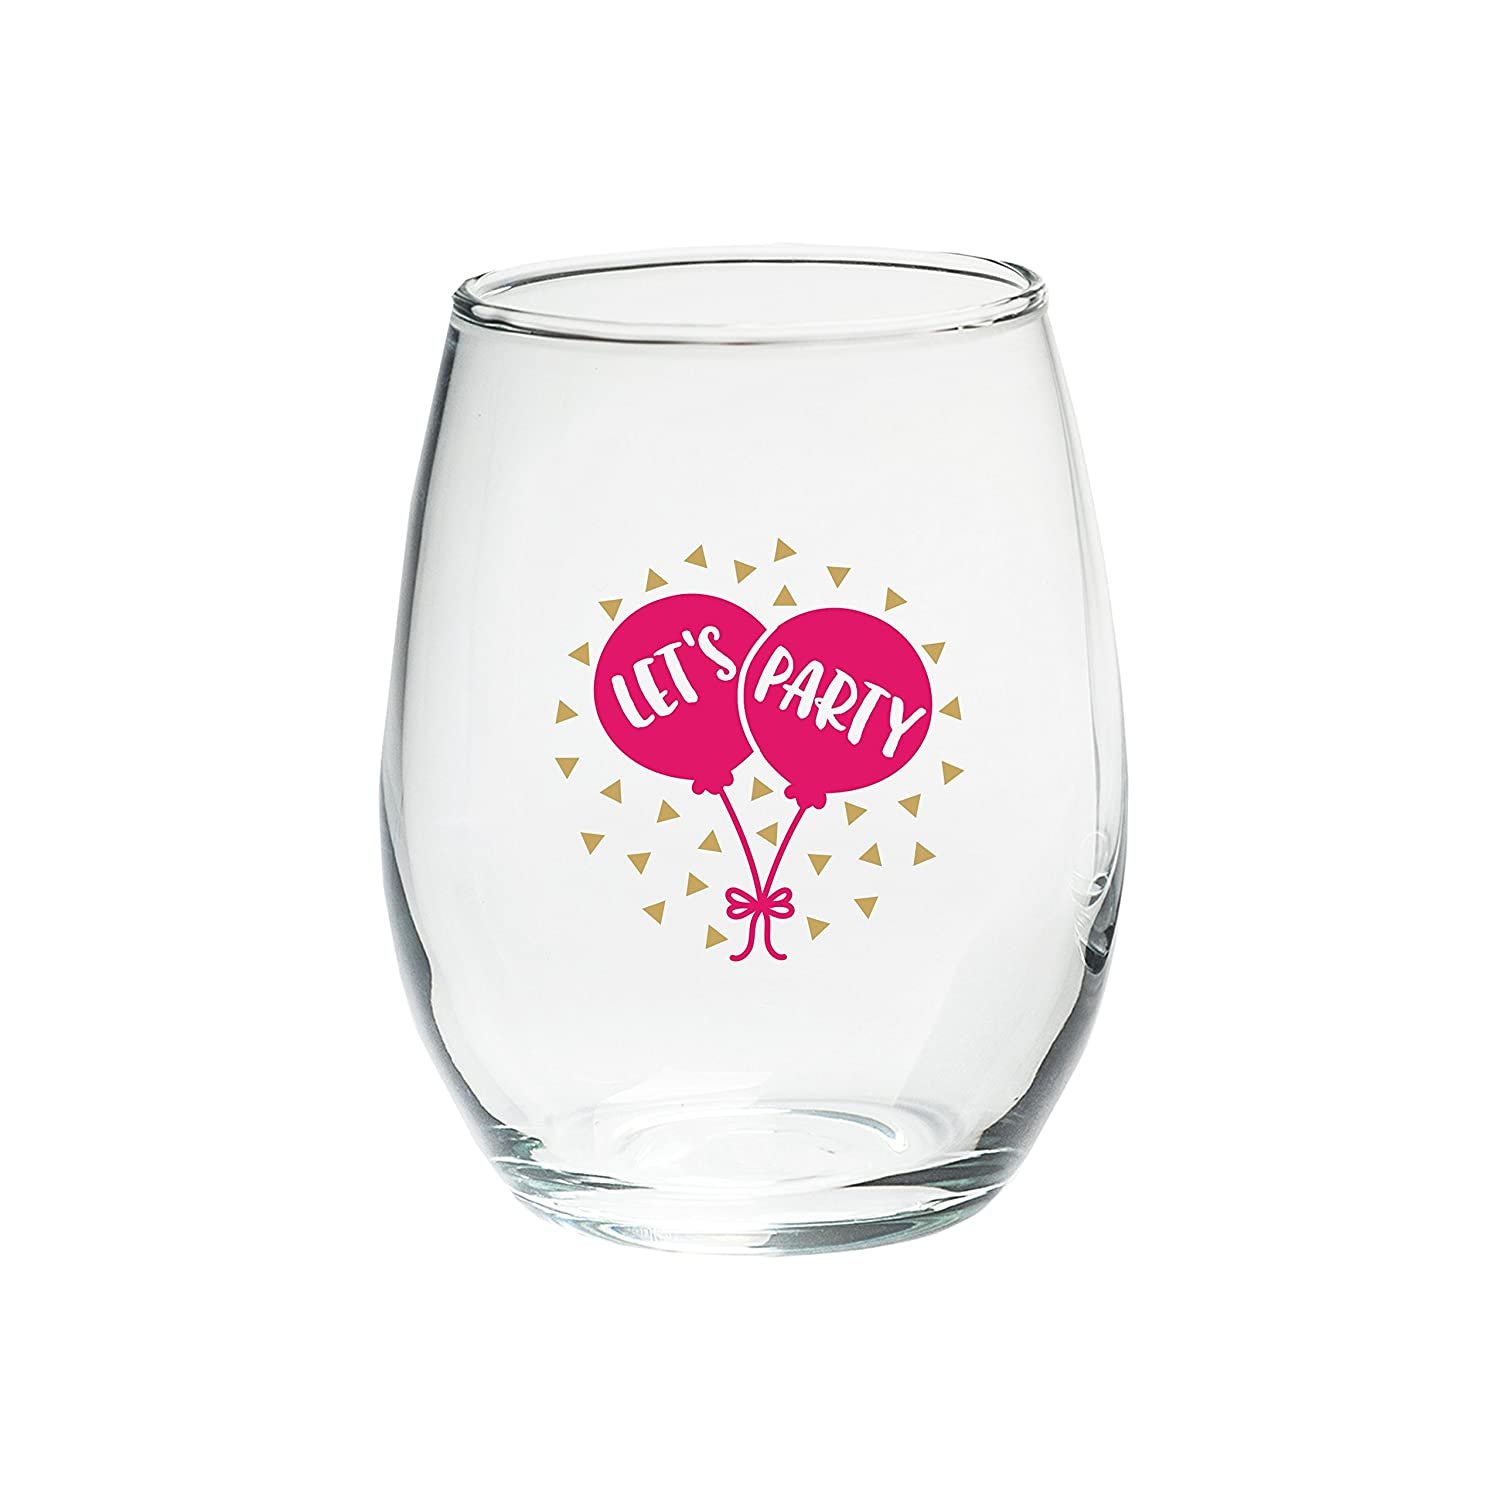 c870a37b644 Kate Aspen 30023NA-LP Let's Party 15 oz. Stemless (Set of 4) Wine Glasses  Clear